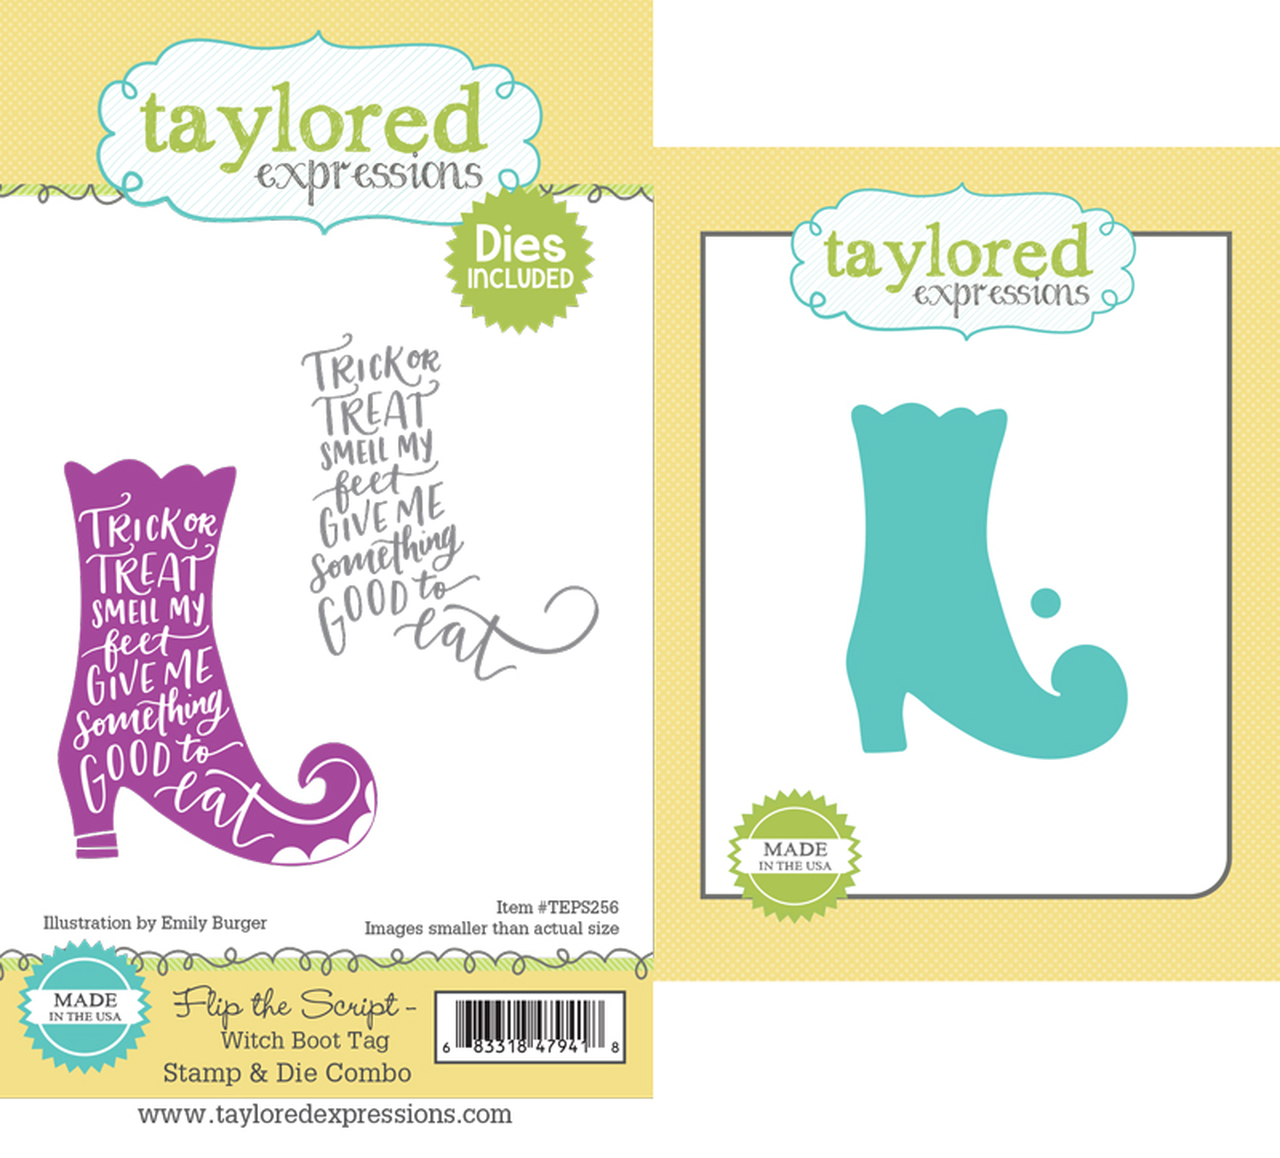 Taylored Expression - Flip the Script - Witch Boot Tag Stamp & Die Combo